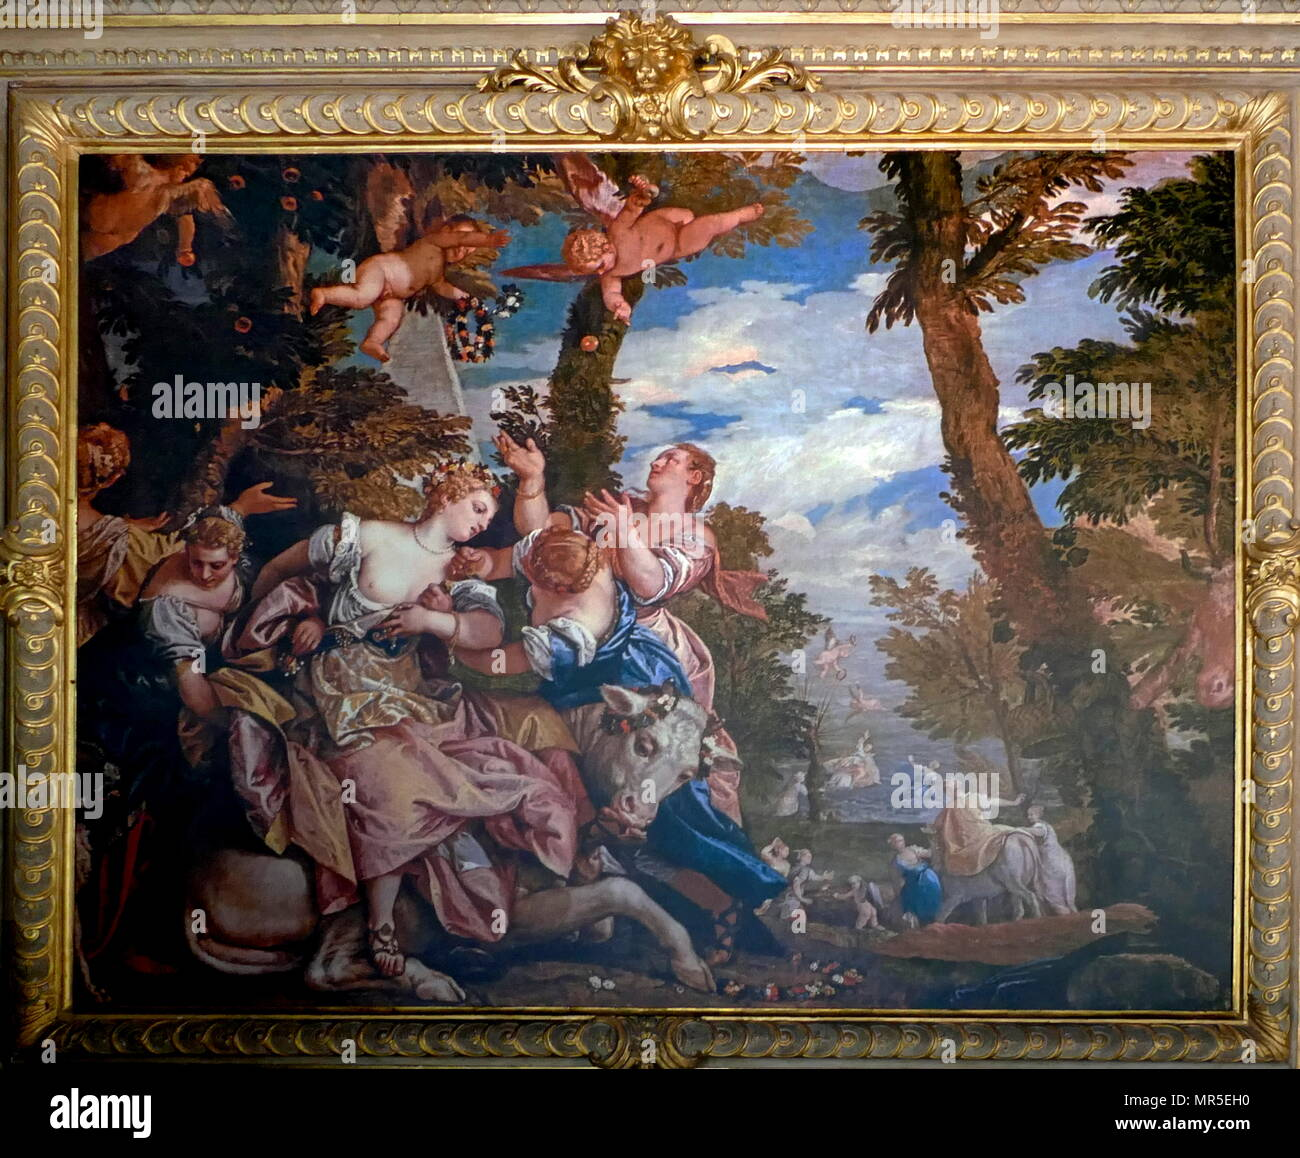 Paolo Veronese  (1528–1588) 'The abduction of Europa' circa 1578. oil on canvas. Doge's Palace, Venice - Stock Image